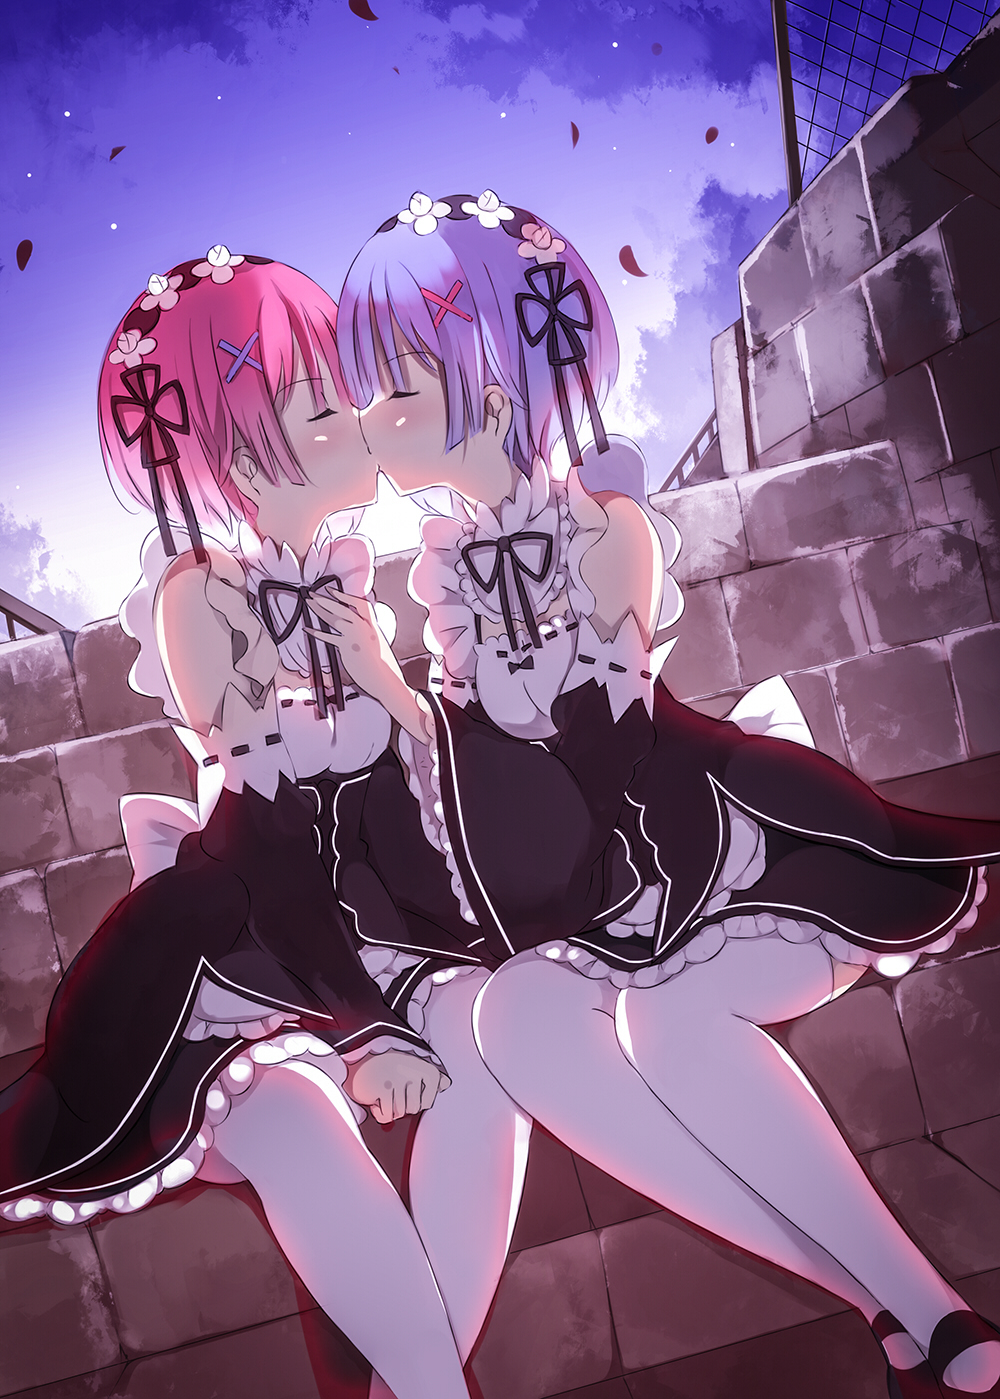 2girls bad_id blue_hair closed_eyes detached_sleeves hair_ornament hair_ribbon hand_on_another's_chest highres incest kiss maid maid_headdress mary_janes multiple_girls petals pink_hair ram_(re:zero) re:zero_kara_hajimeru_isekai_seikatsu rem_(re:zero) ribbon senya_fuurin shoes short_hair siblings sisters sitting thigh-highs twincest twins white_legwear wide_sleeves x_hair_ornament yuri